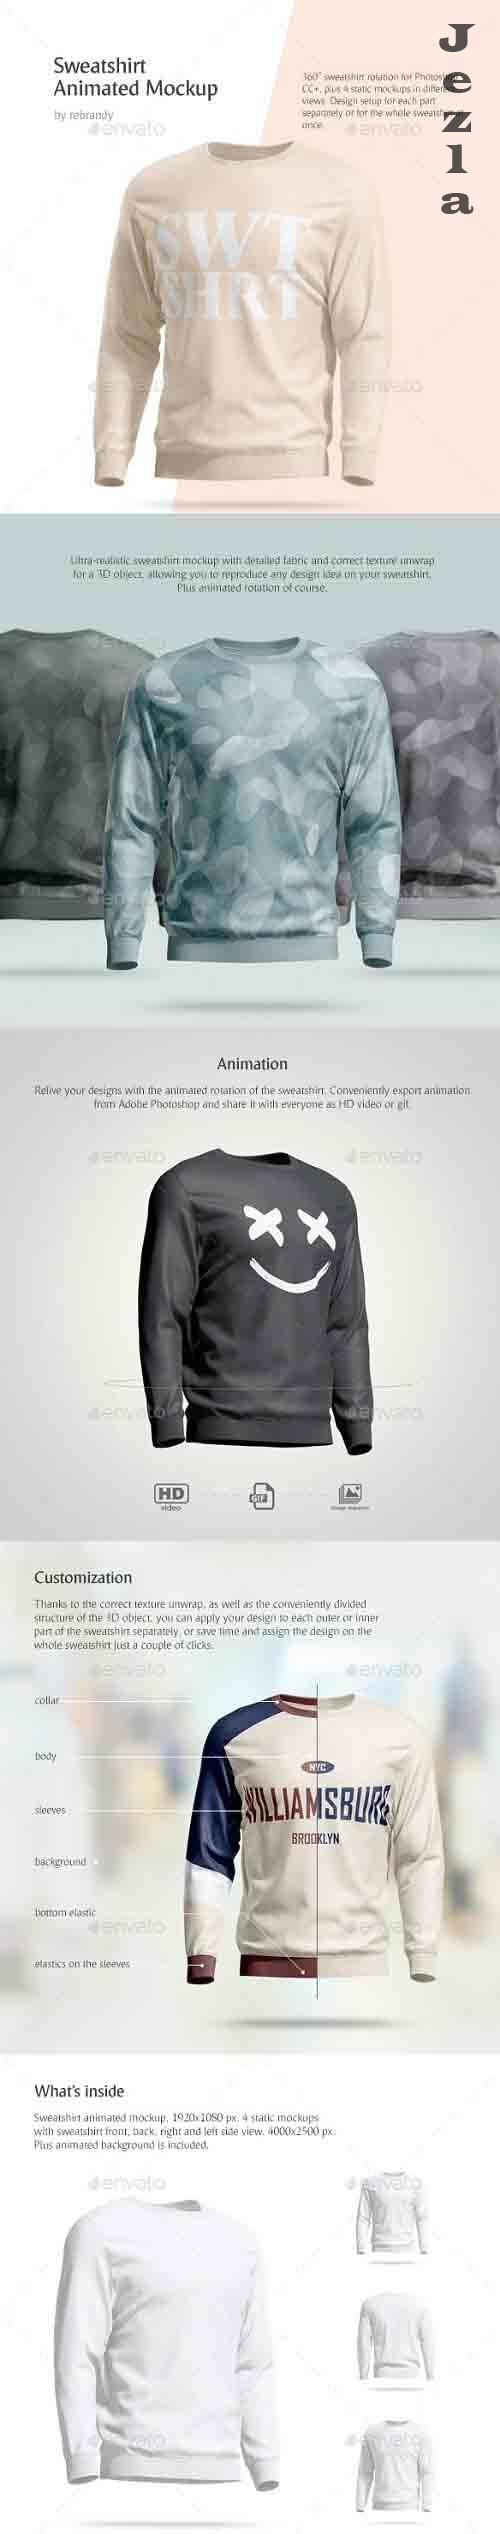 CreativeMarket - Sweatshirt Animated Mockup 4520102